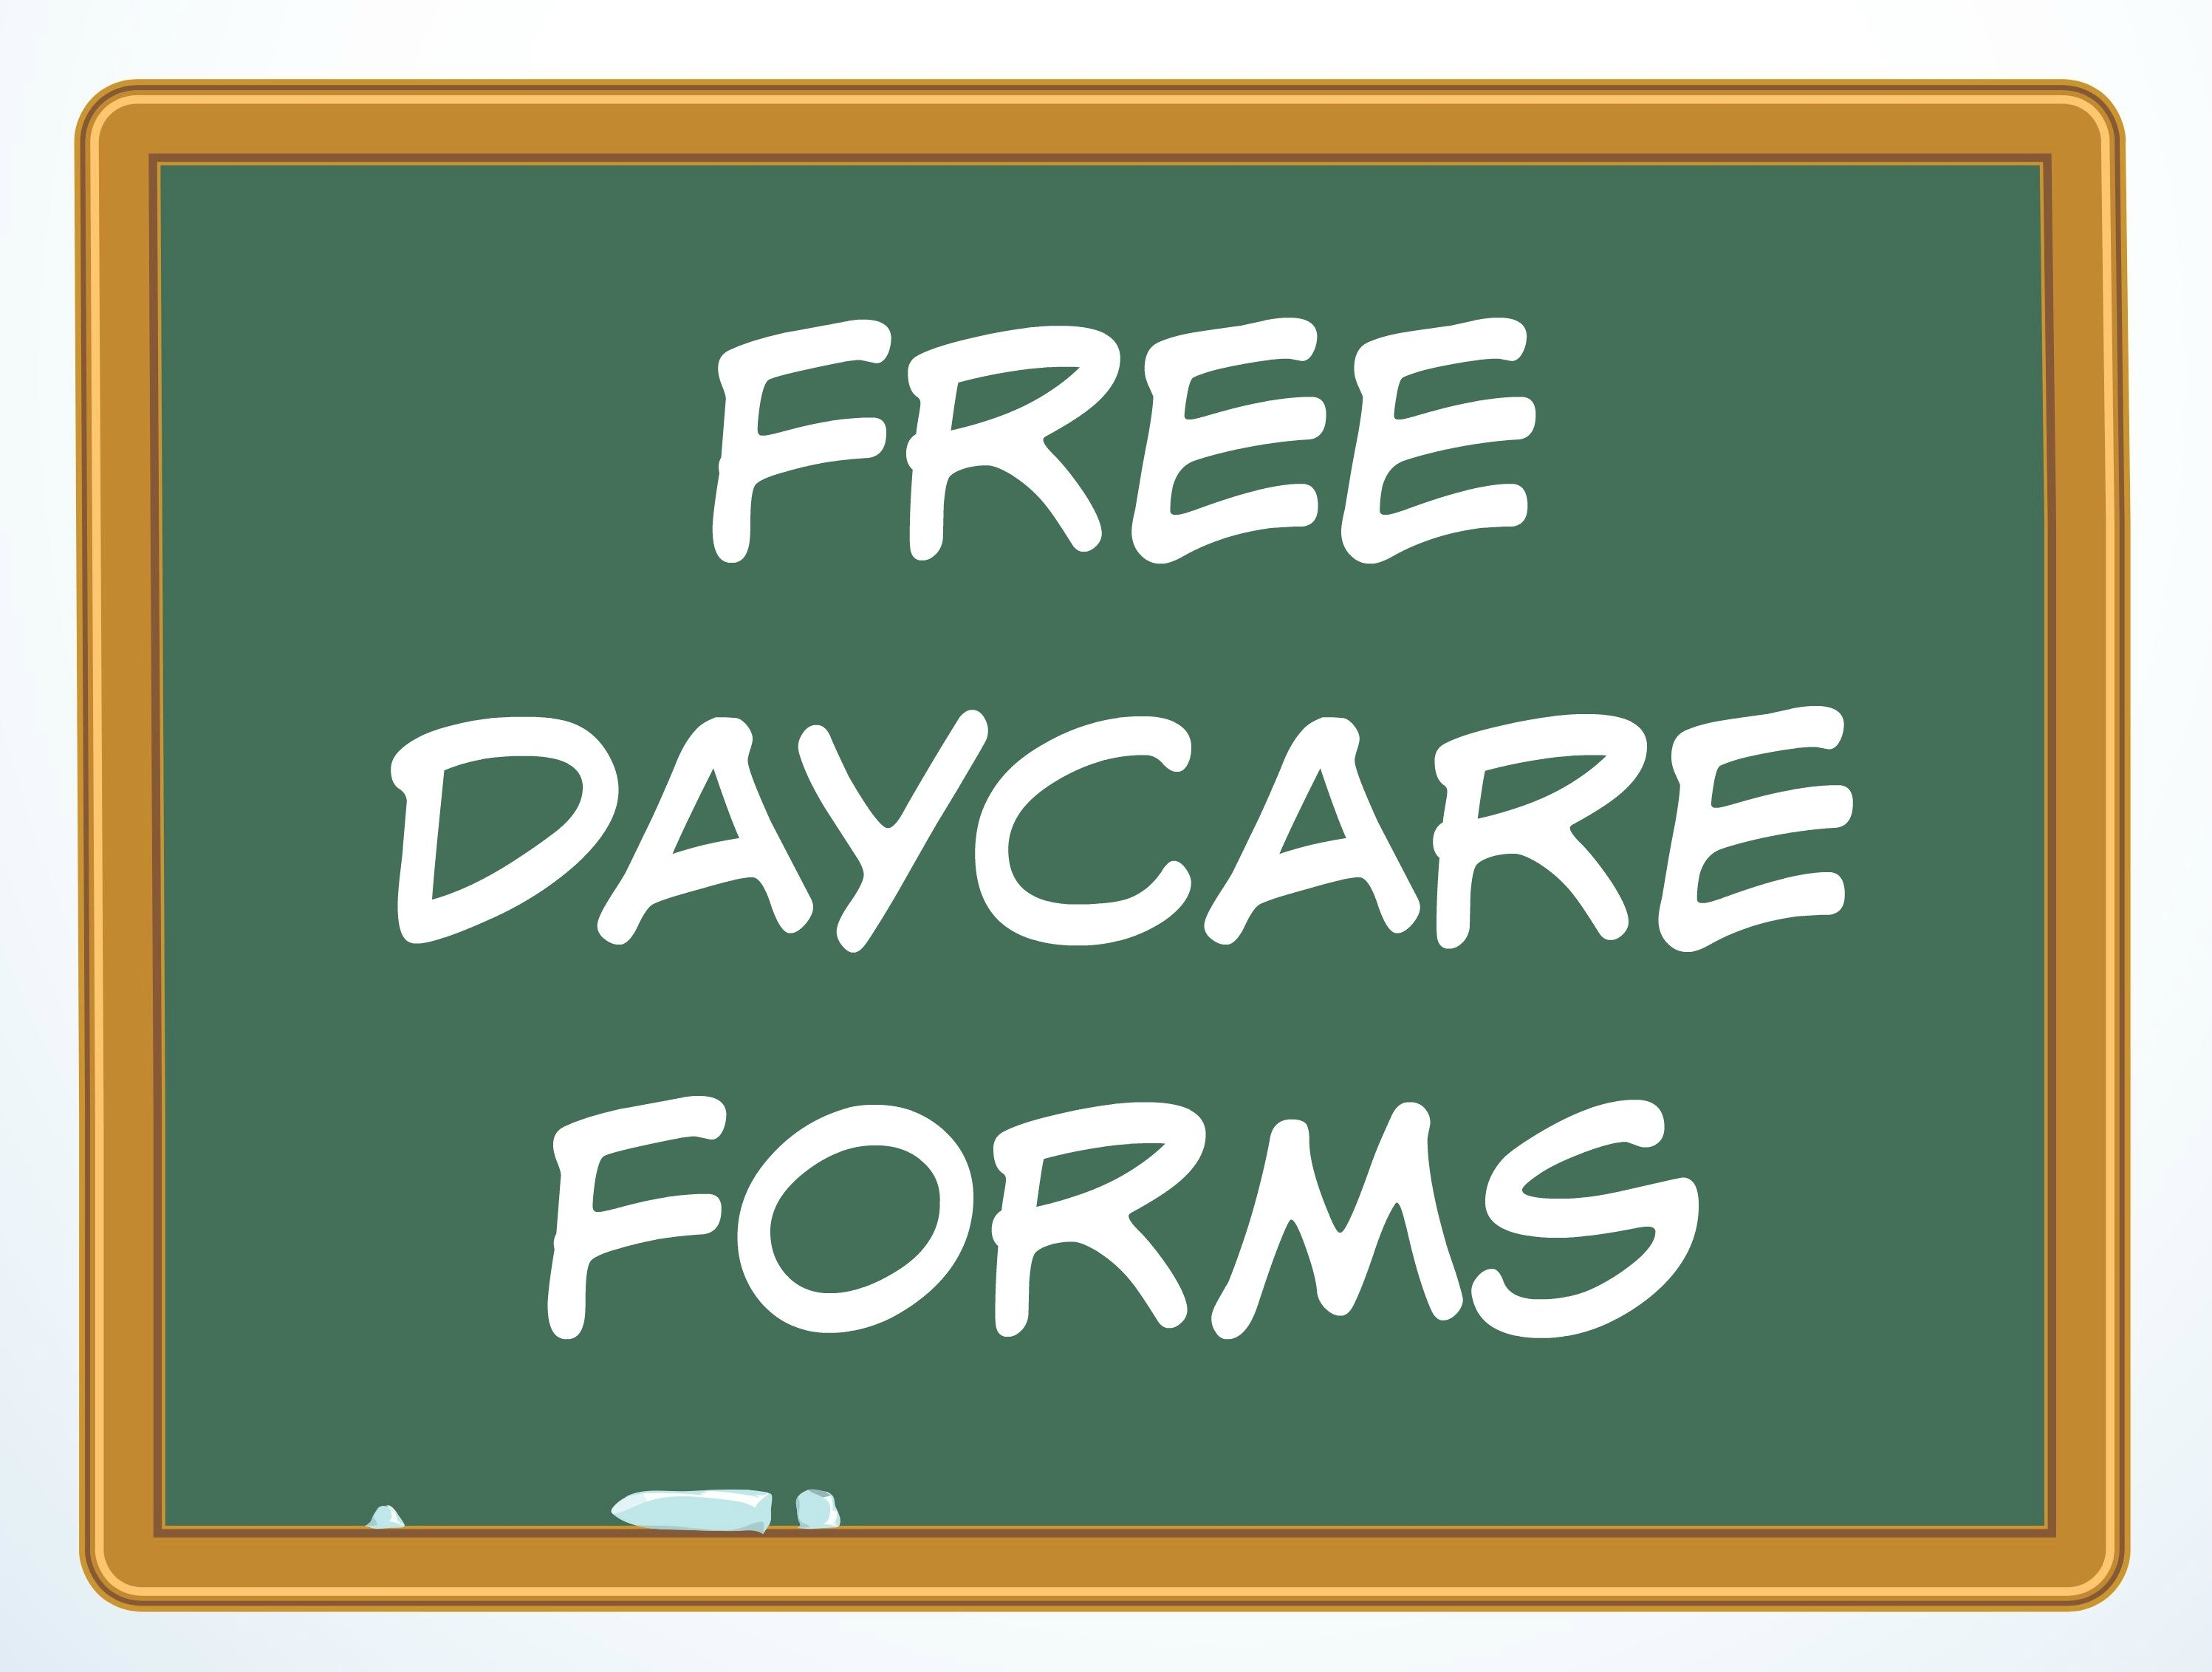 free daycare forms and sample documents, Invoice templates